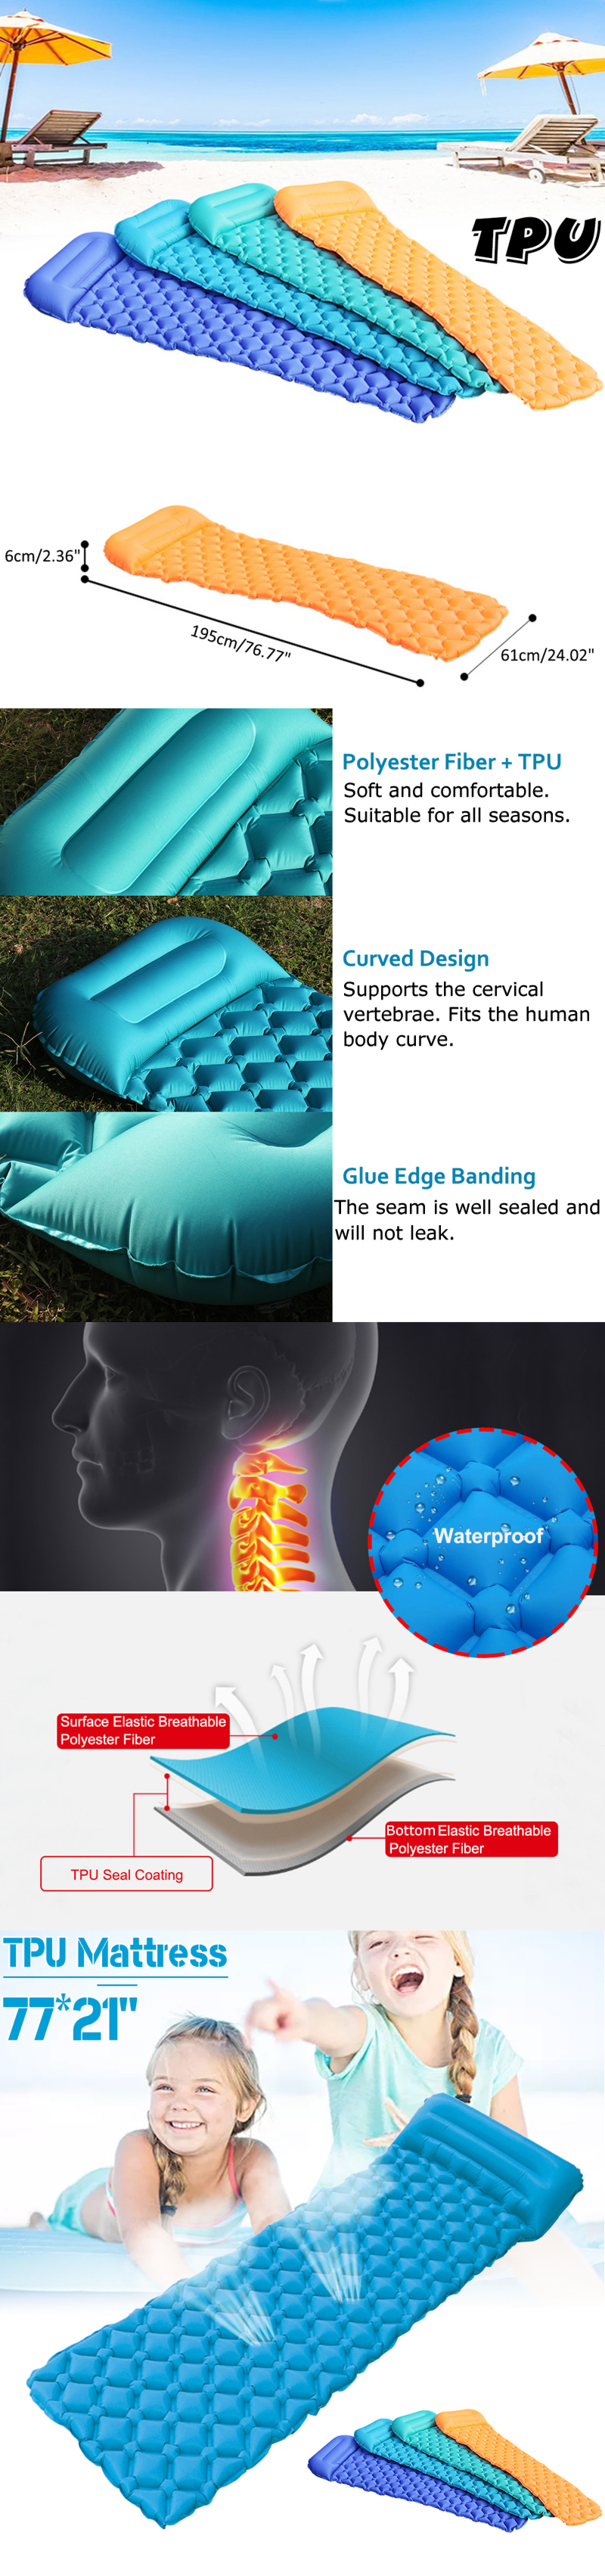 Inflatable Sleeping Mat - Main Features